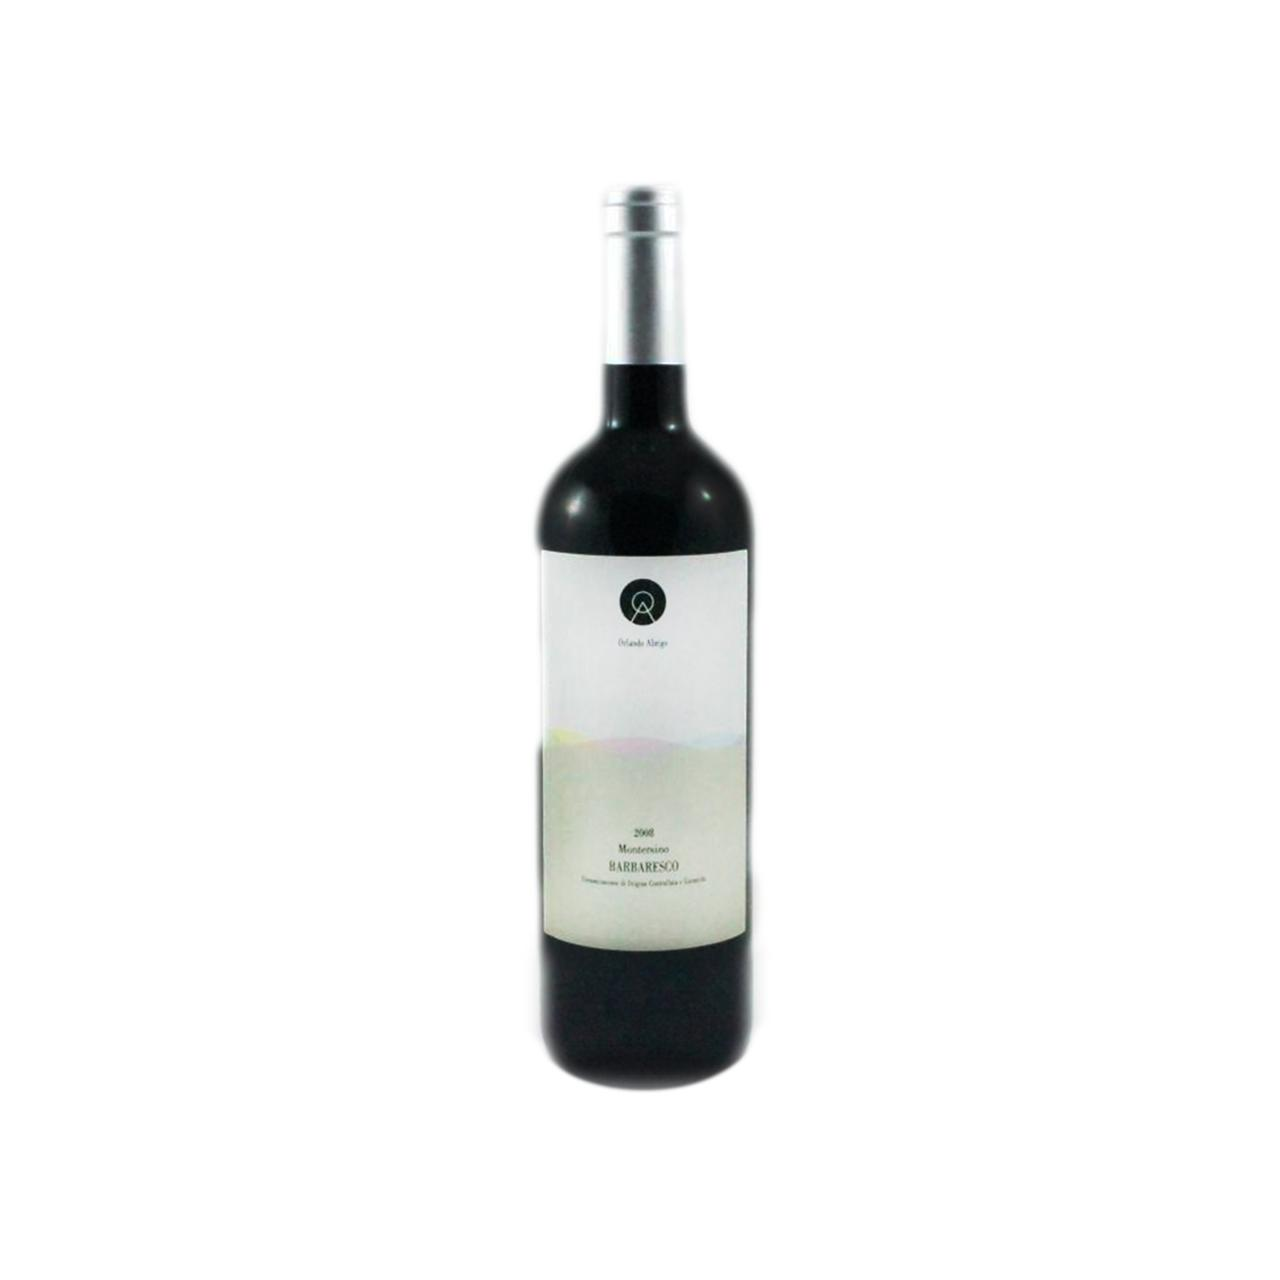 Barbaresco Montersino 2008